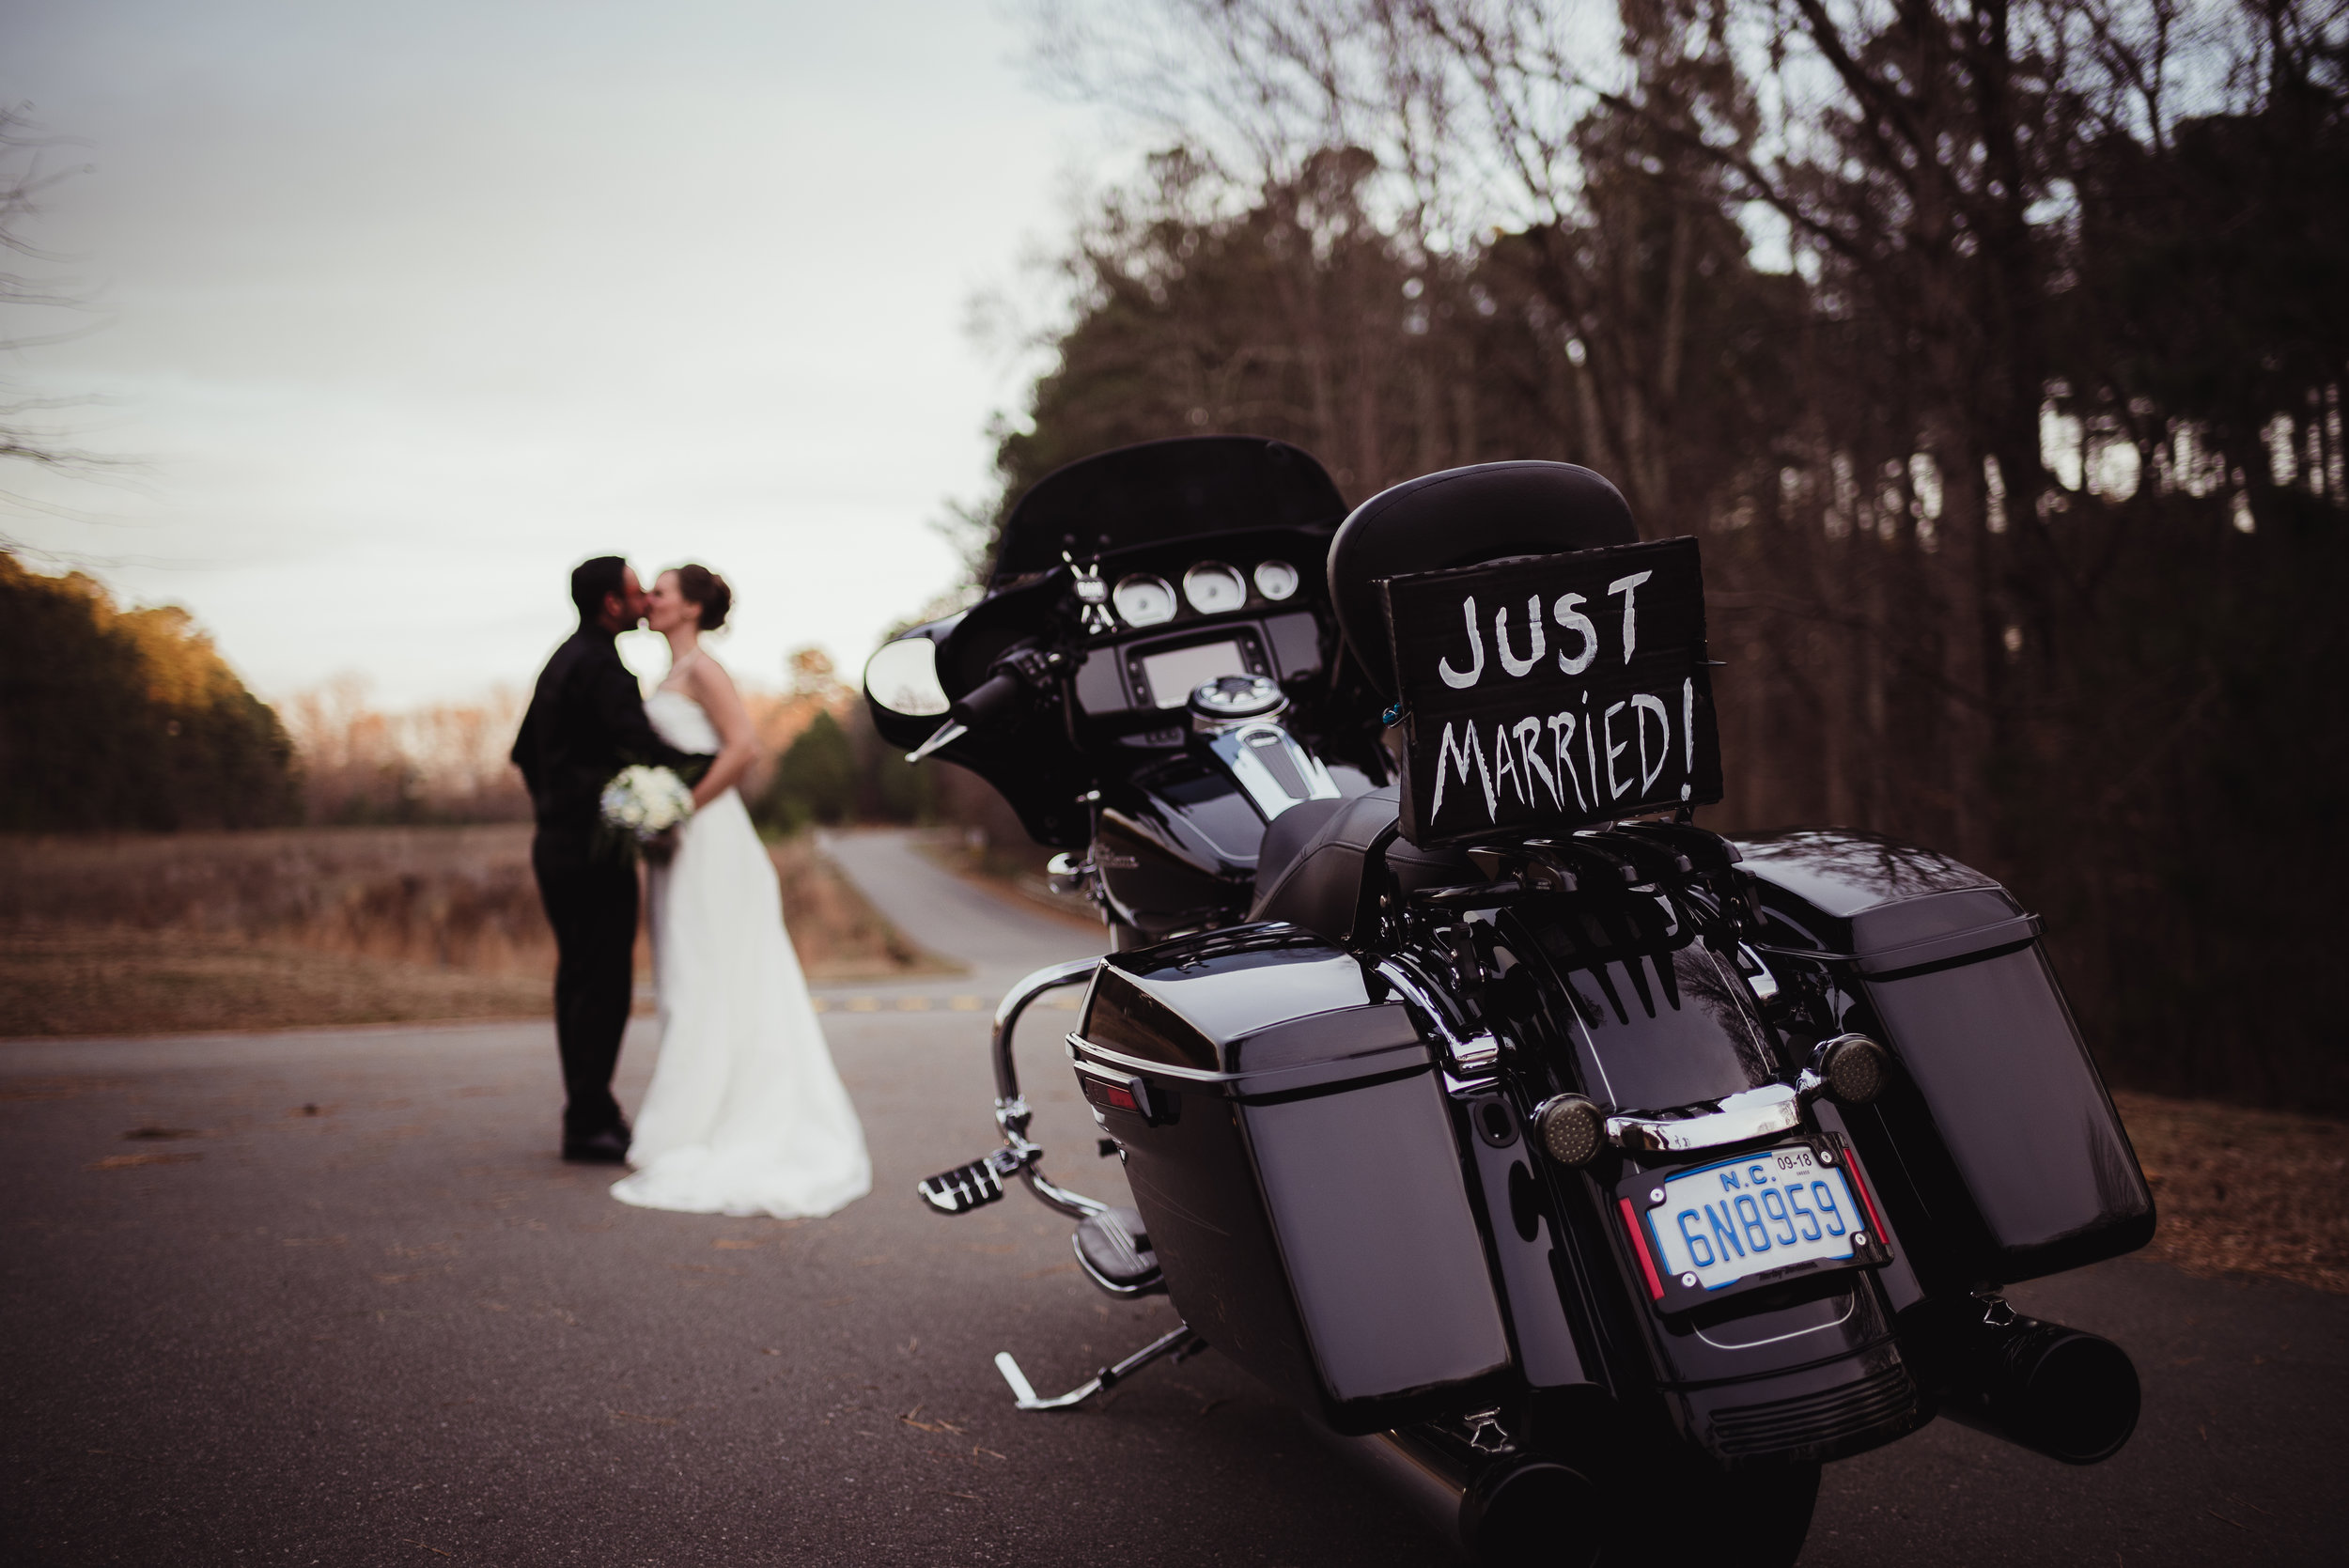 Raleigh-wedding-photographer-bride-and-groom-portraits-motorcycle-rose-trail-images.jpg